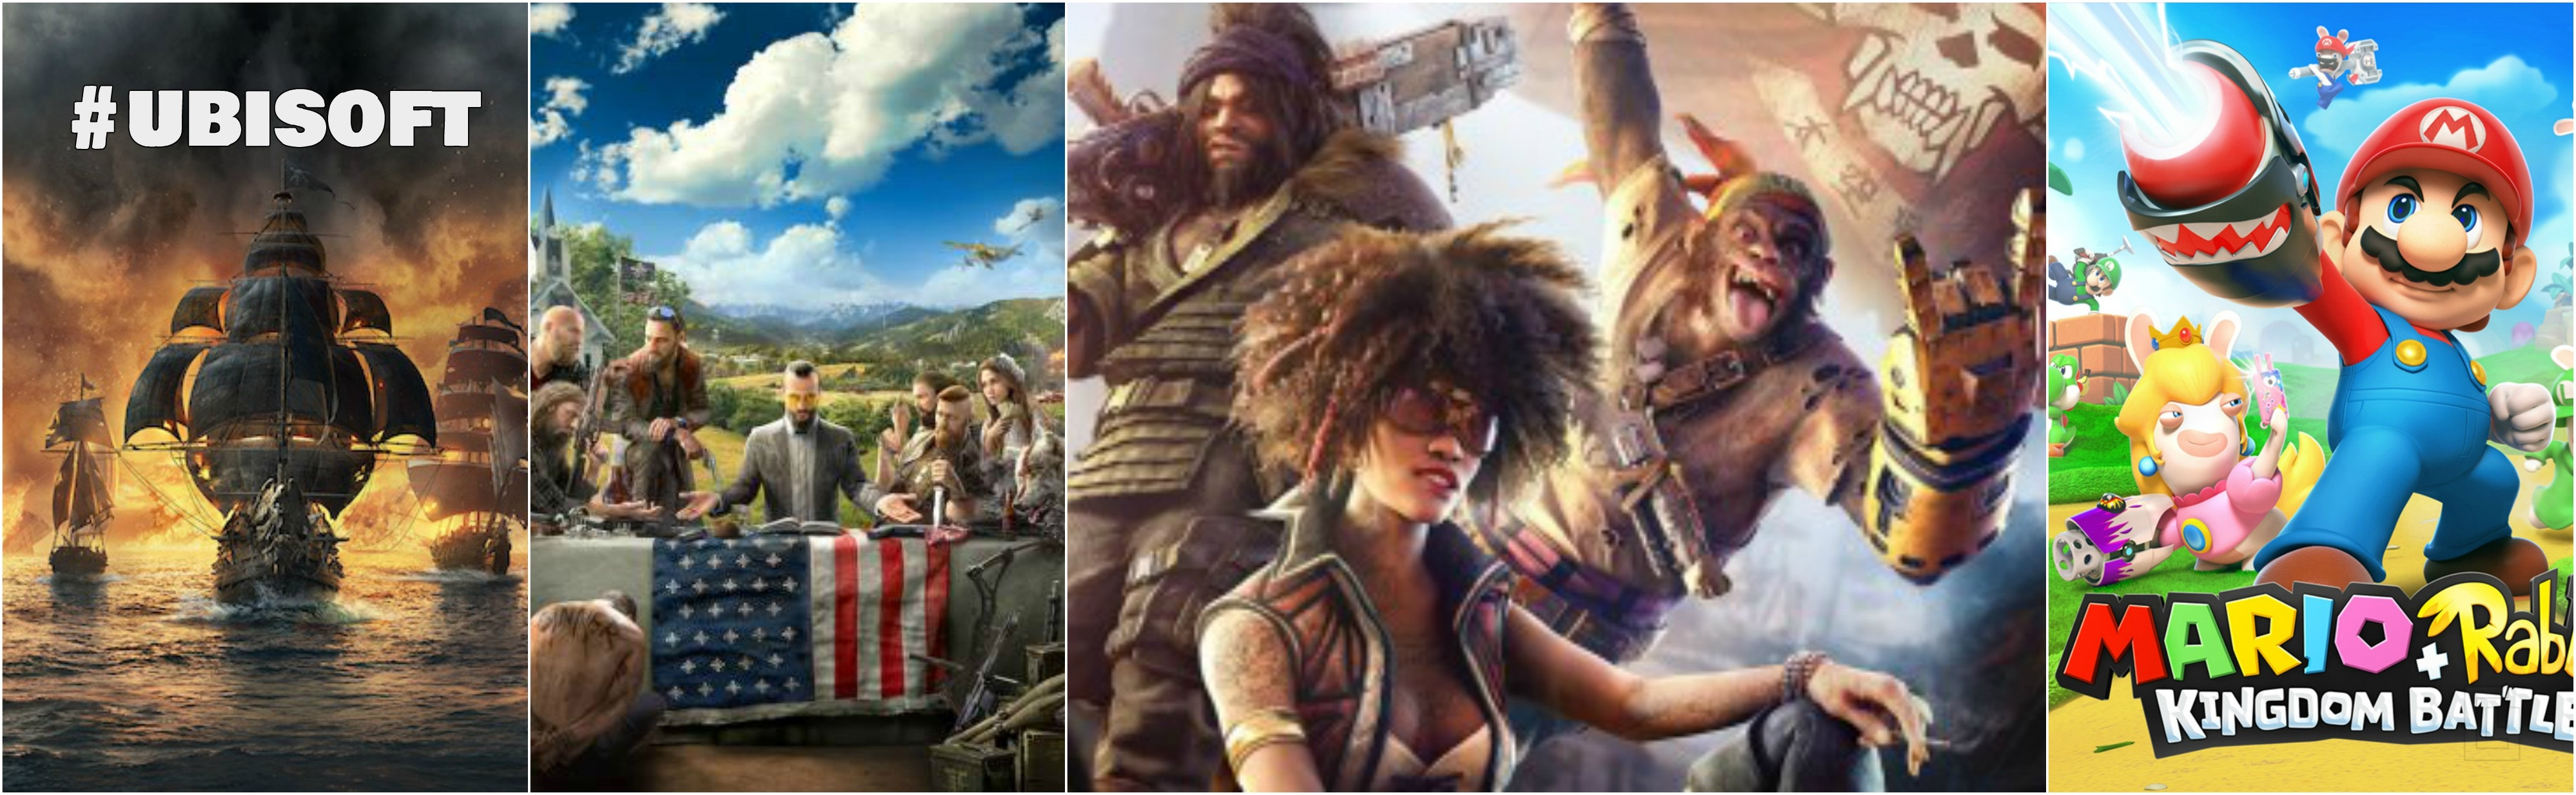 Far Cry 5, Beyond Good & Evil 2, Mario … E3 2017 – Ubisoft trailers